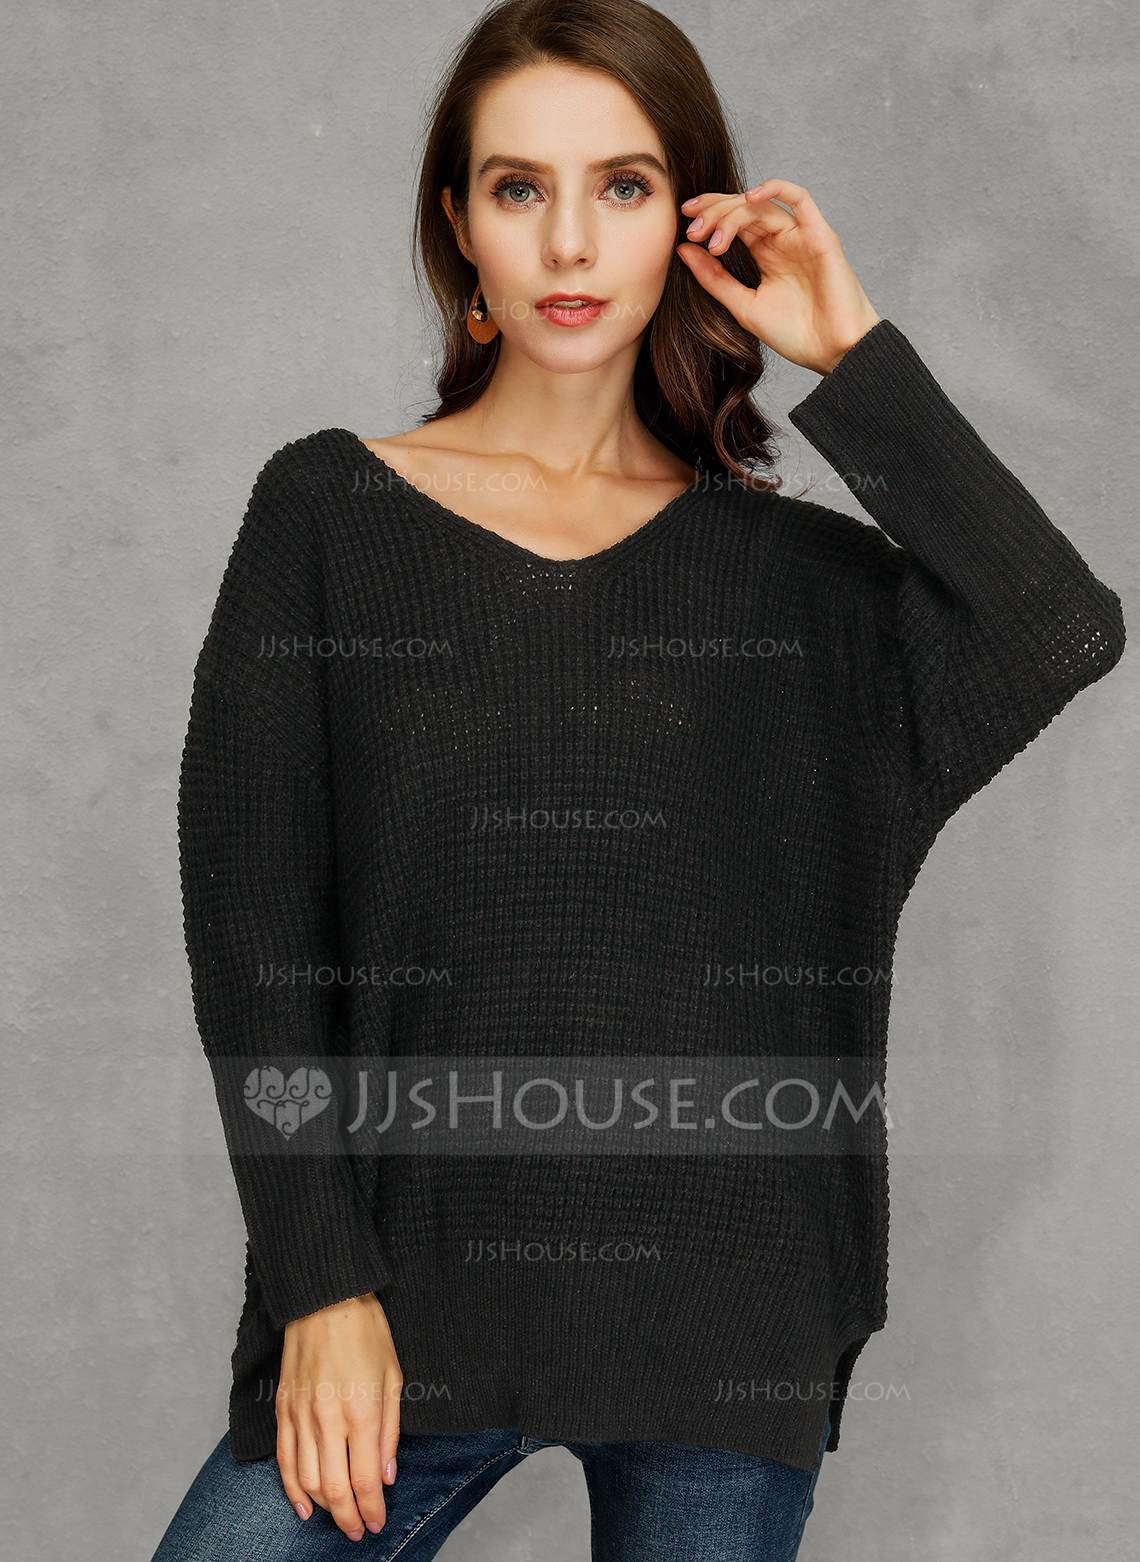 Chunky knit Solid Polyester V-neck Pullovers Sweater Dresses Sweaters